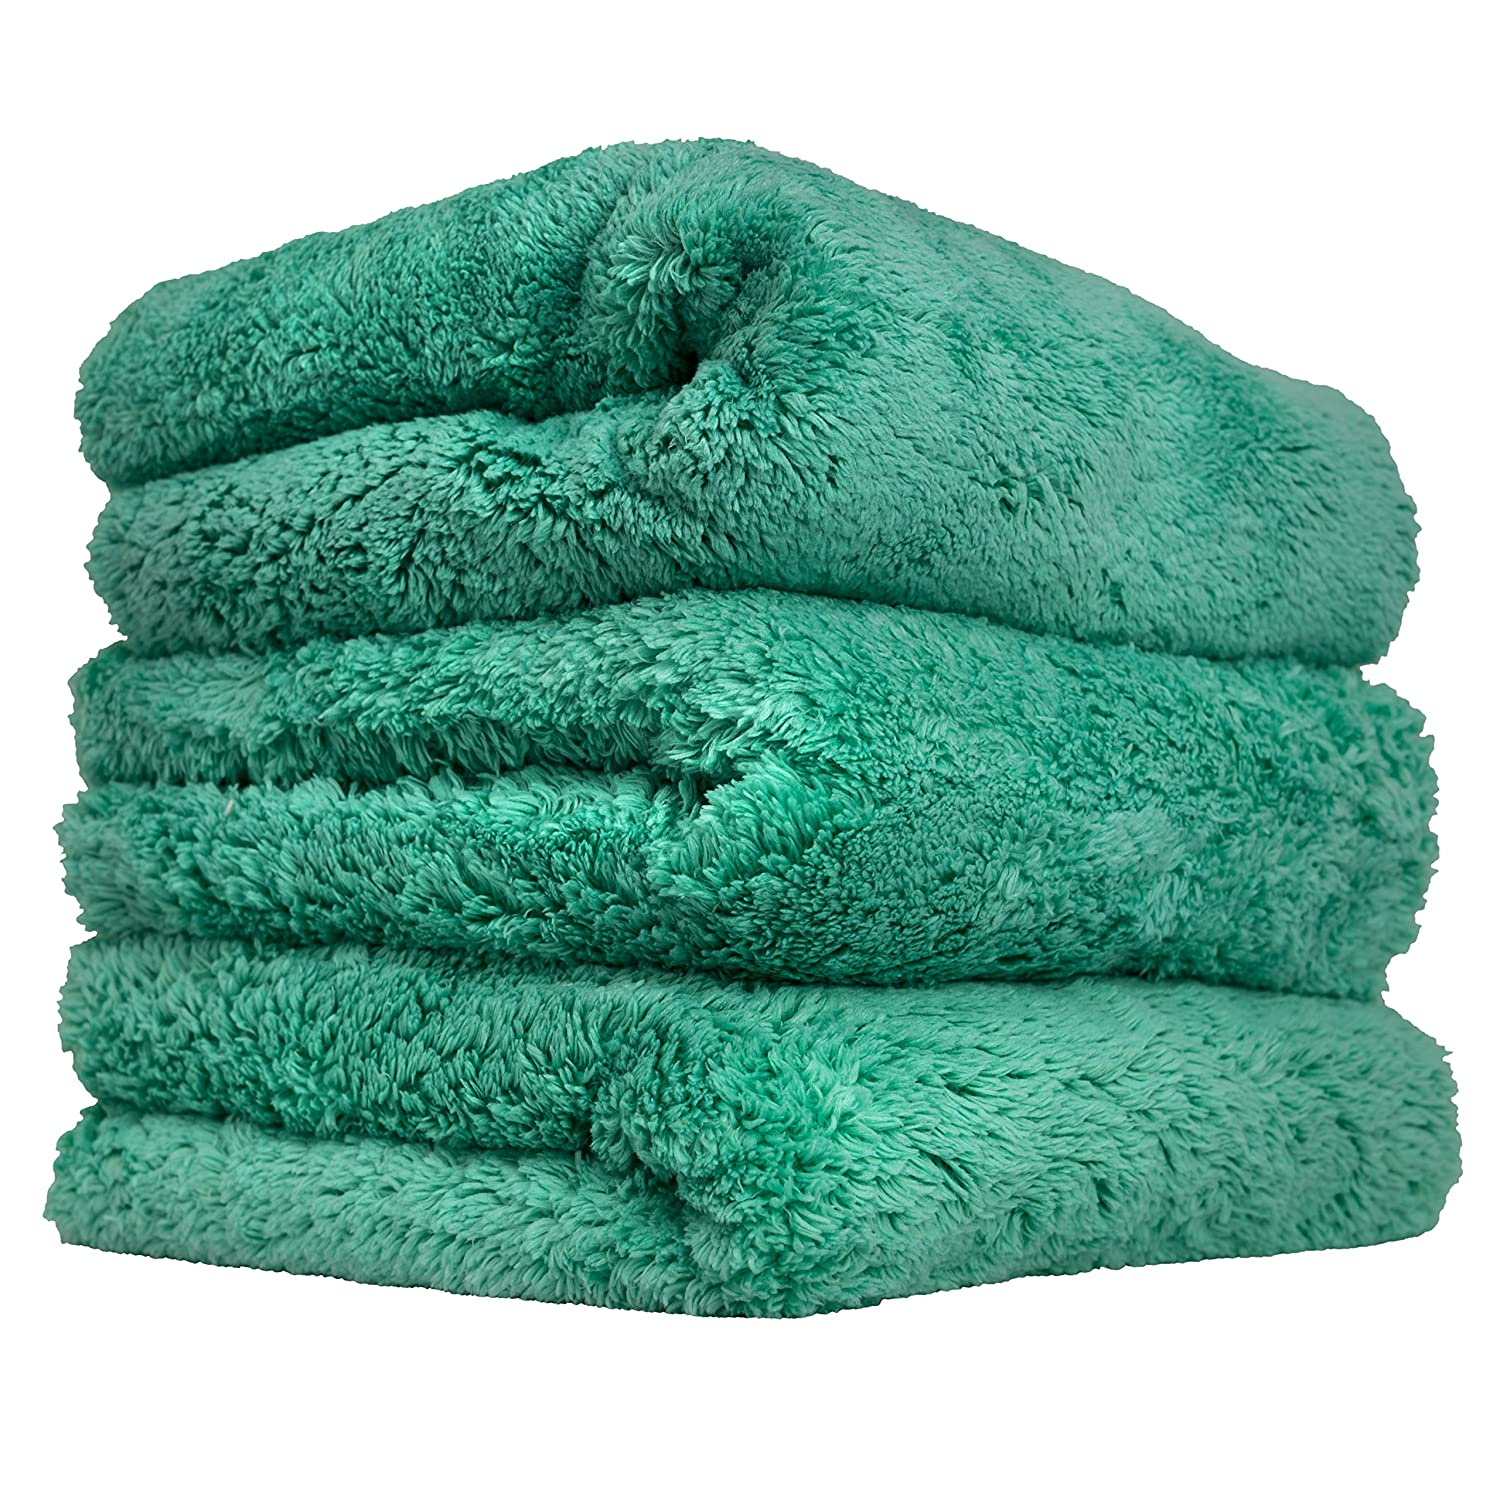 Chemical Guys MIC35603 Green 16' x 16'  Happy Ending Edgeless Microfiber Towel, 1 Pack